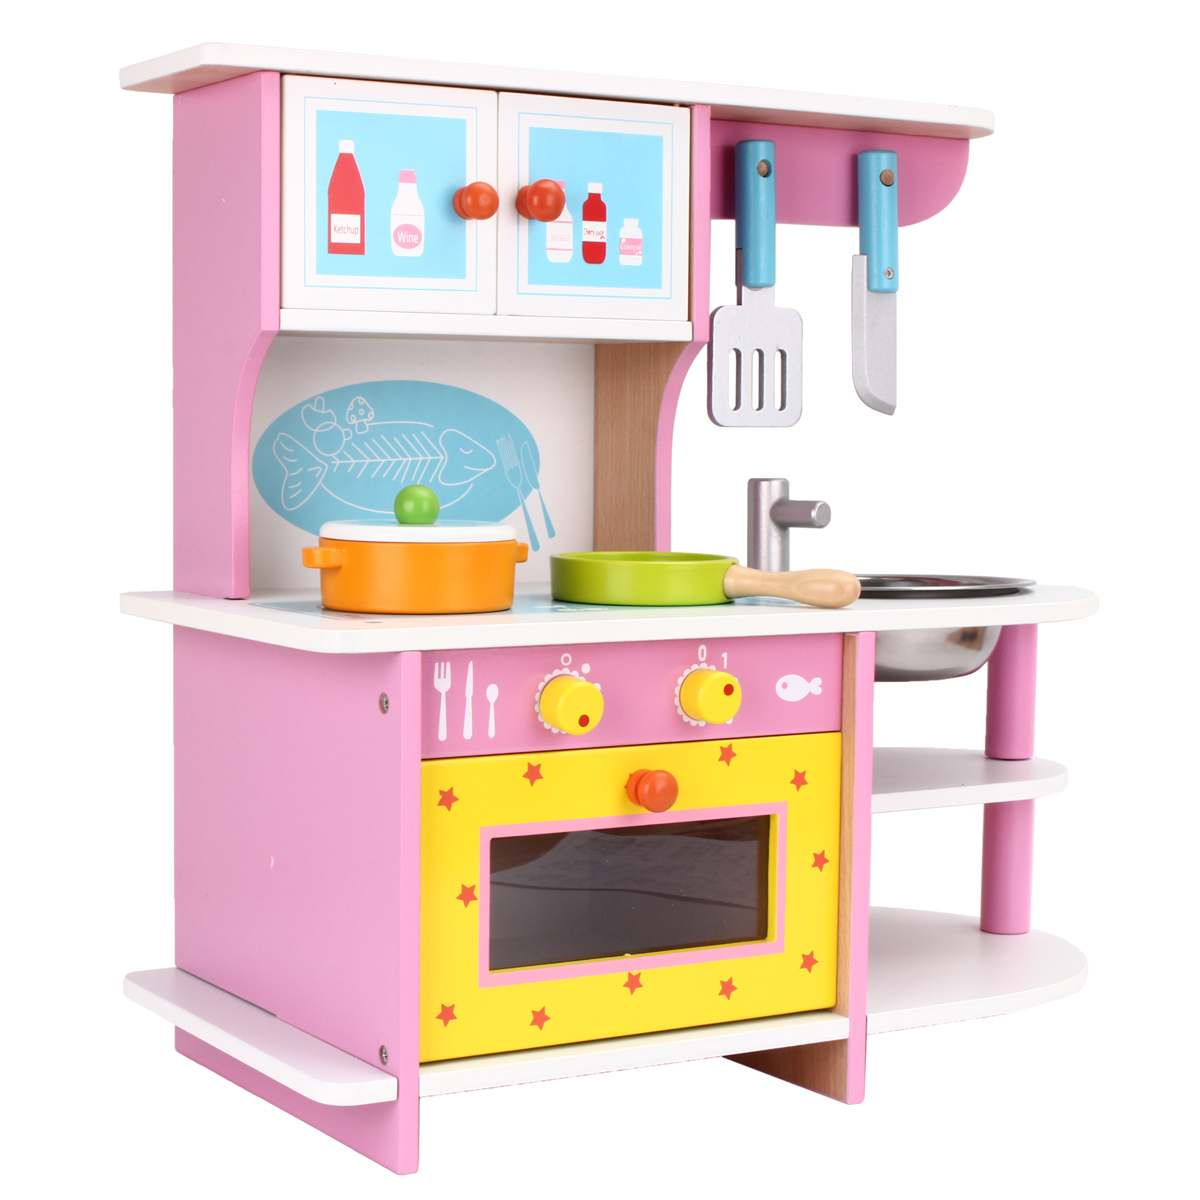 Wooden Kids Kitchen How To Create A Pantry In Small Toy Woo Toys For Educational Girls Pretend Play Children Role Set Cooking Tools Kit